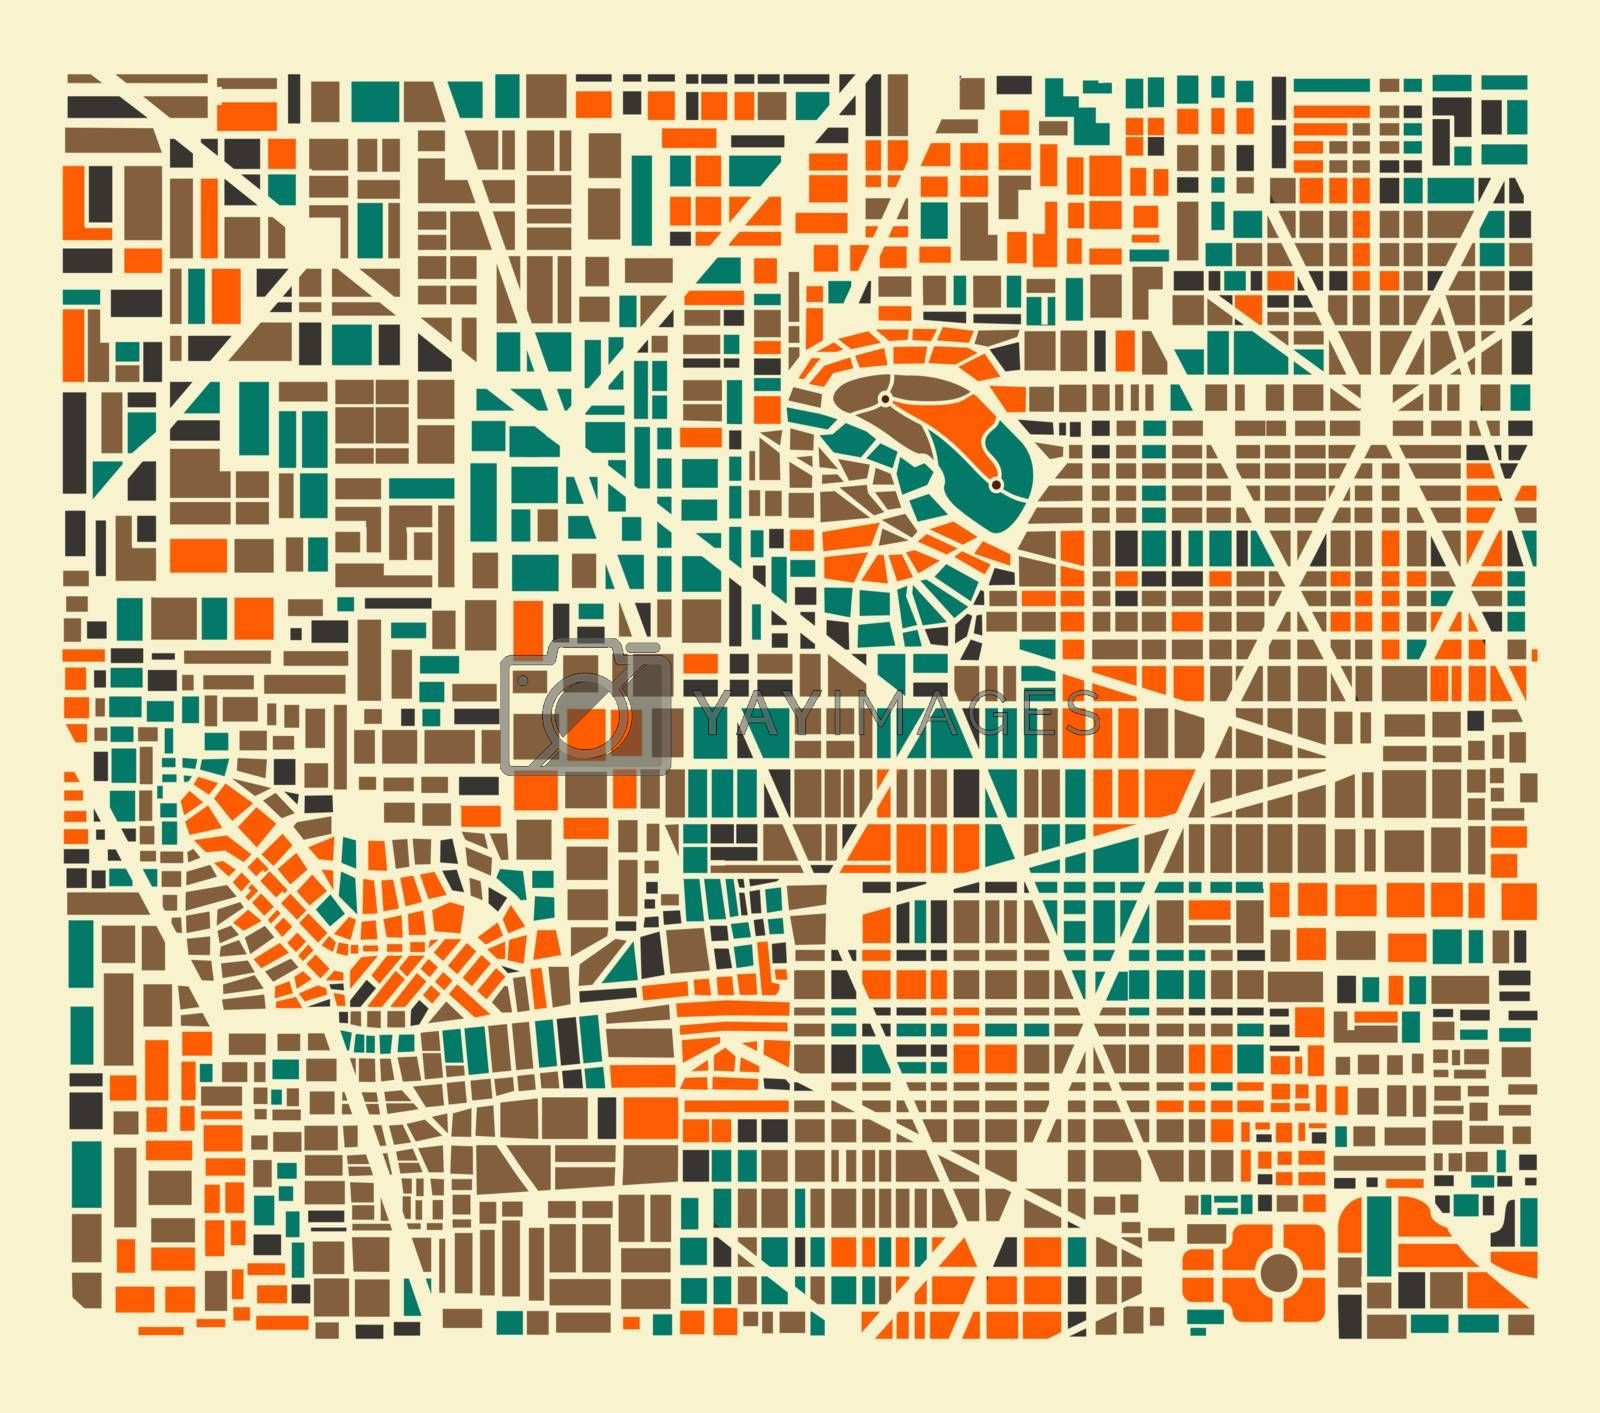 Background city map pattern repeating urban streets, houses and buildings